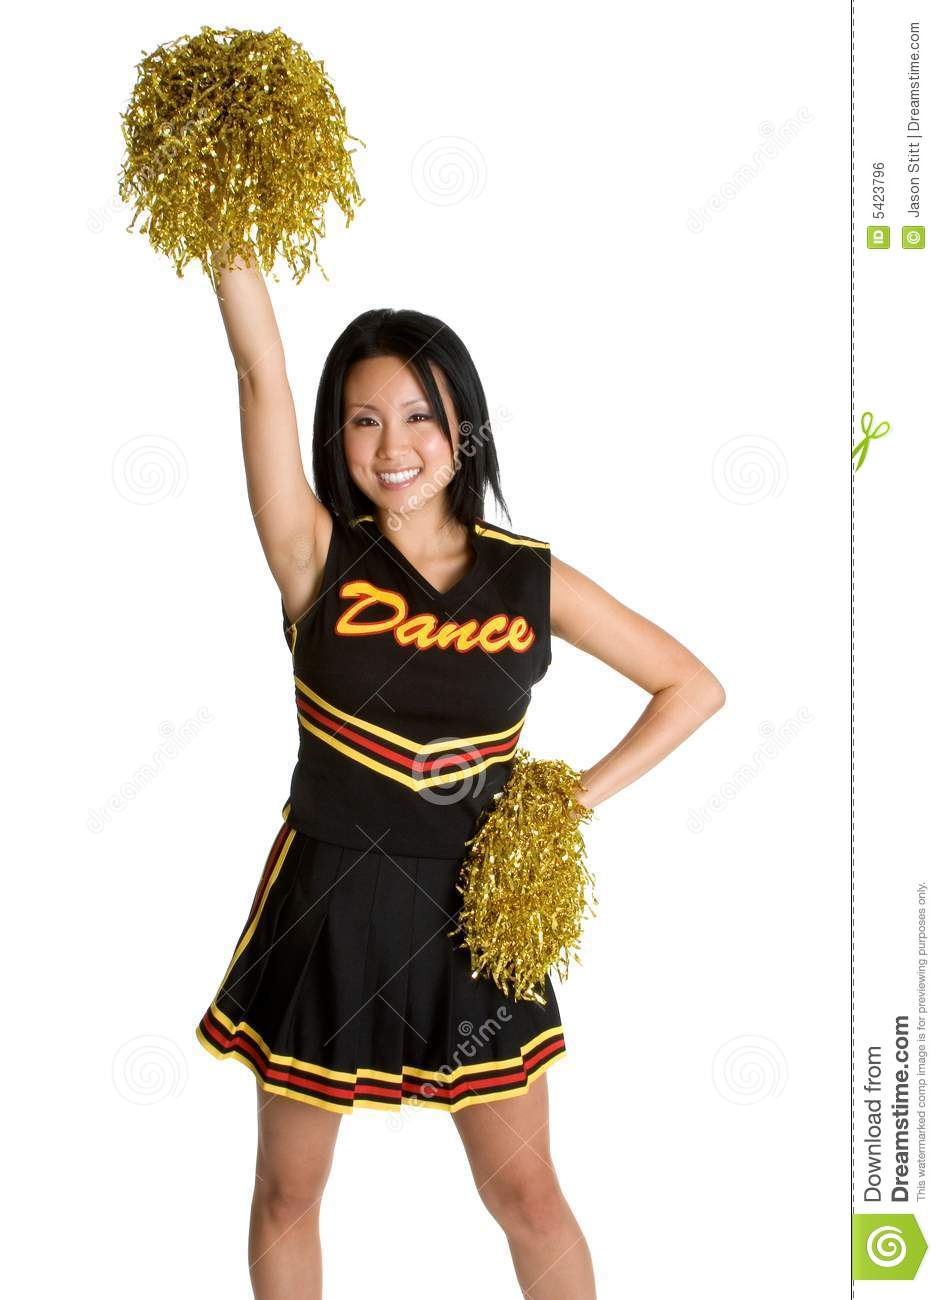 Asian Cheerleader Royalty Free Stock Image - Image: 5423796